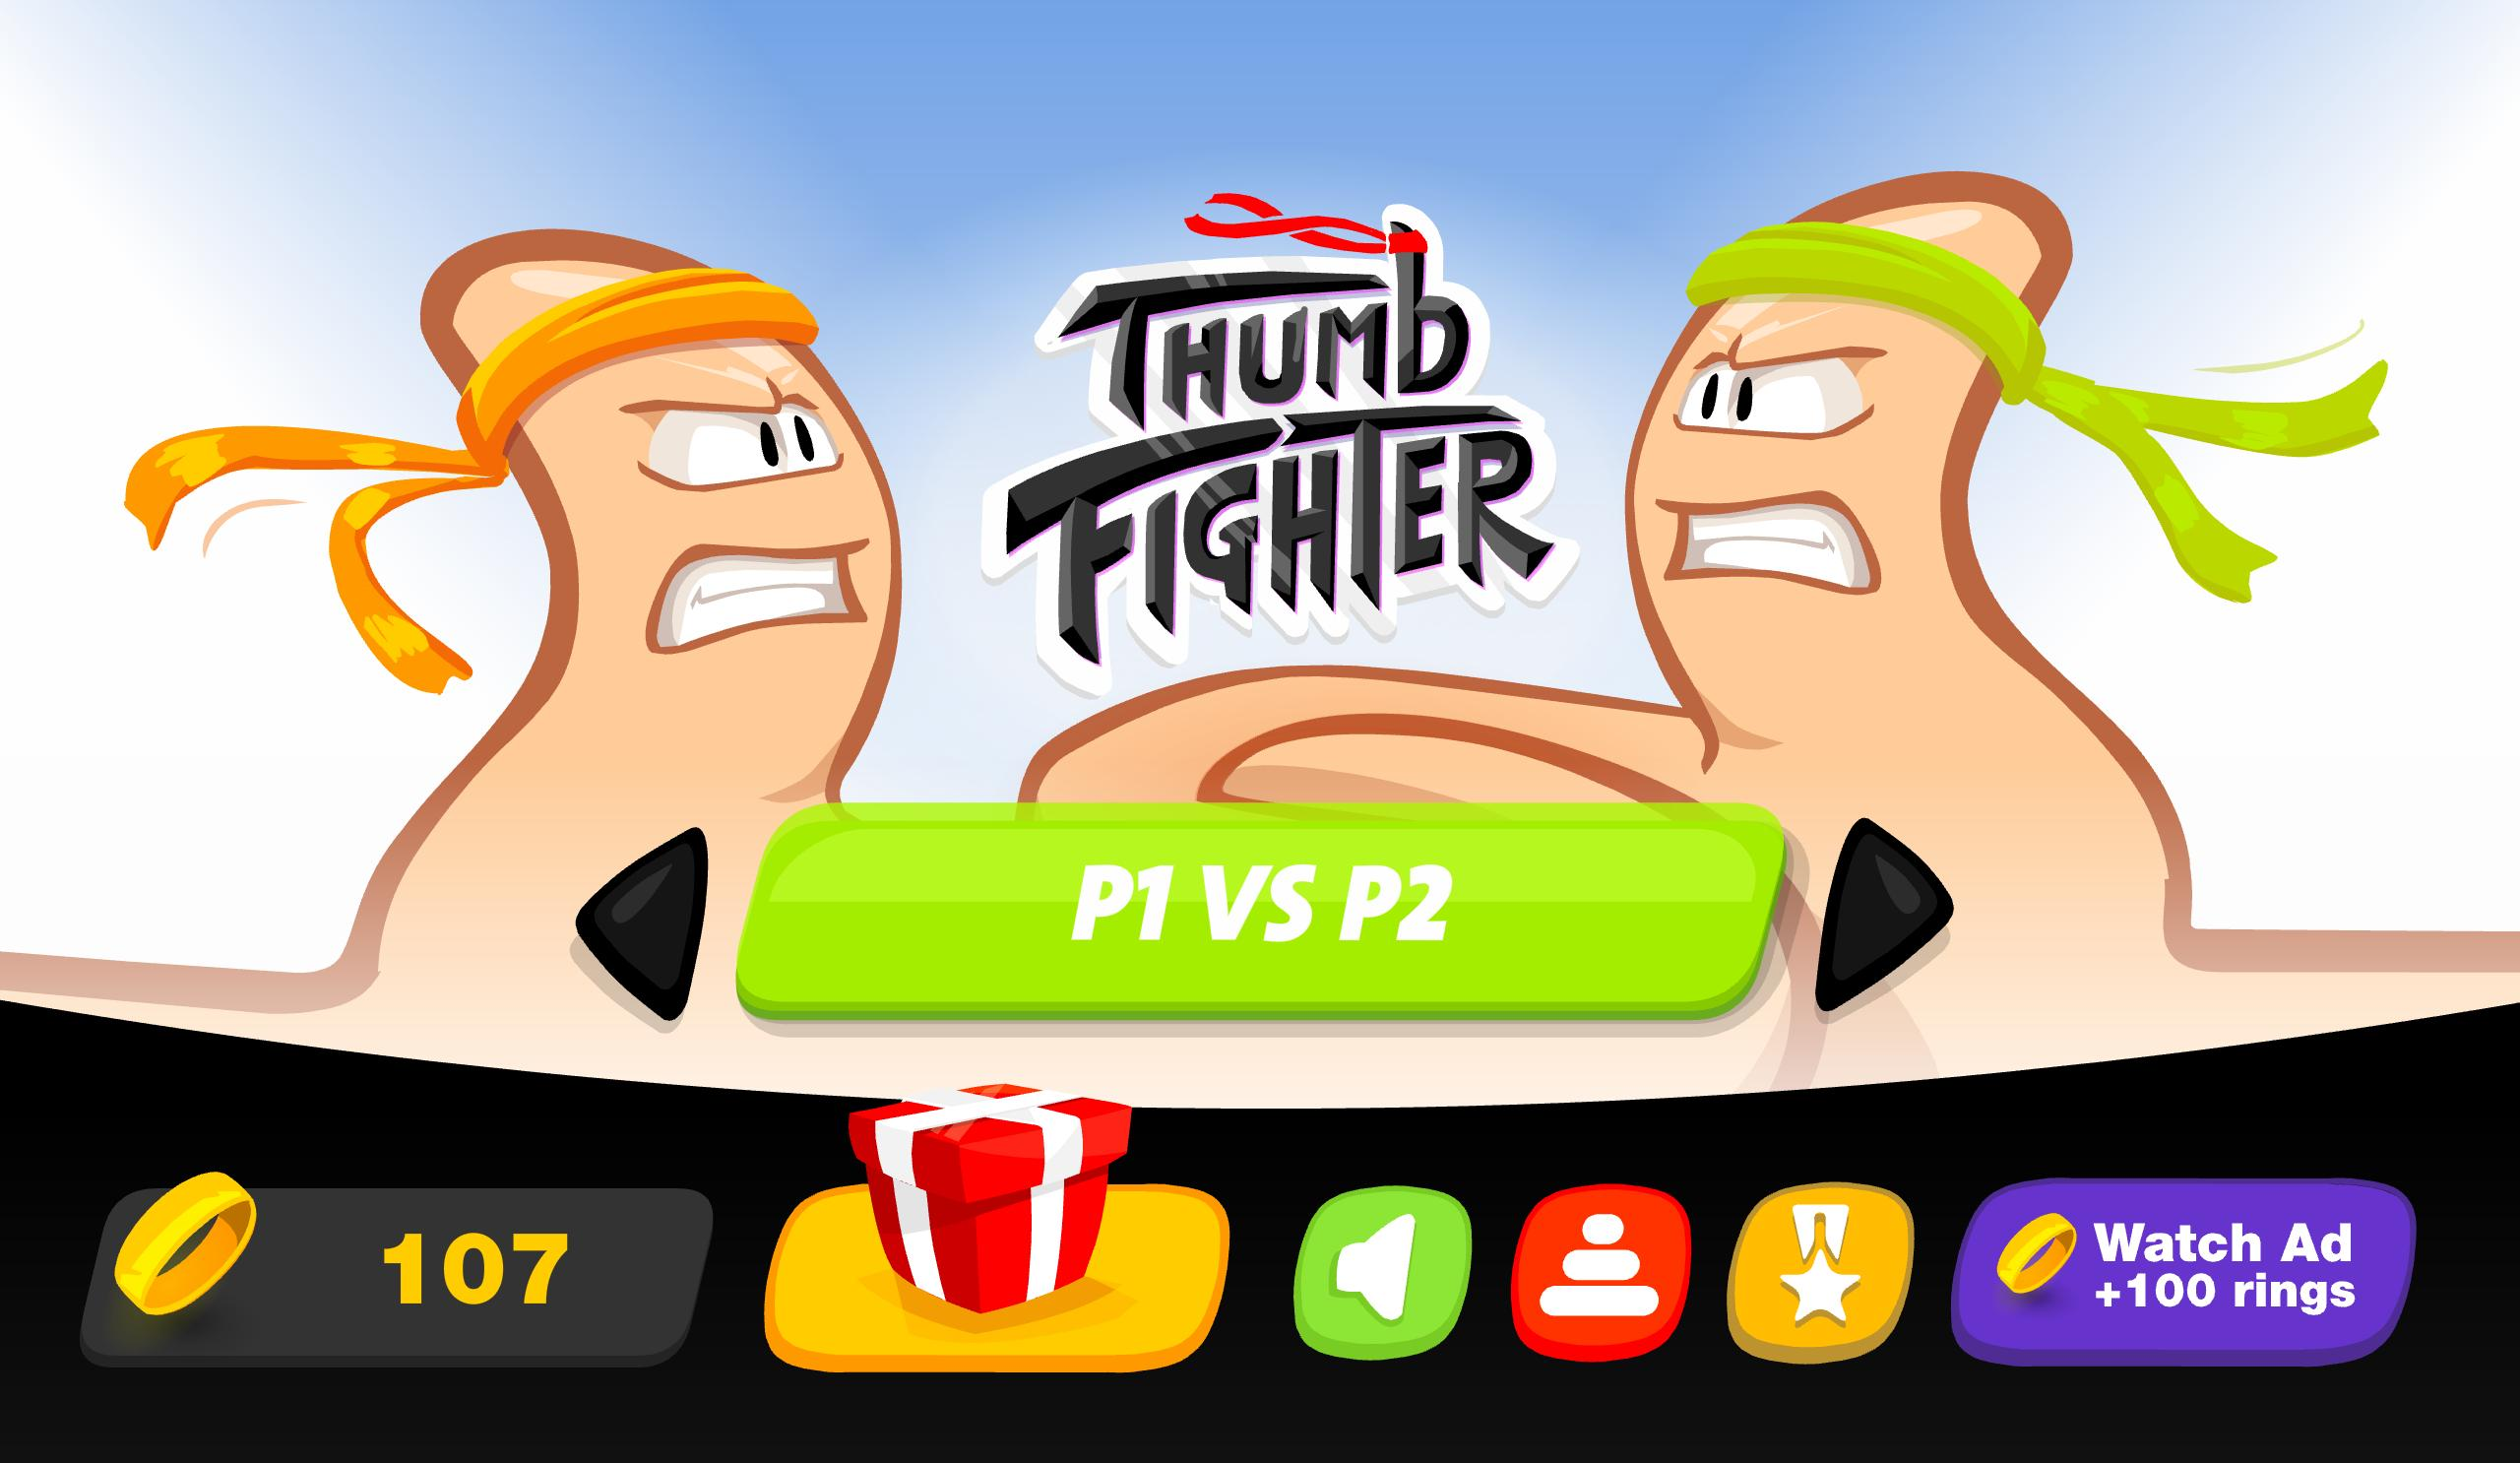 Thumb Fighter 👍 1.4.053 Screenshot 13